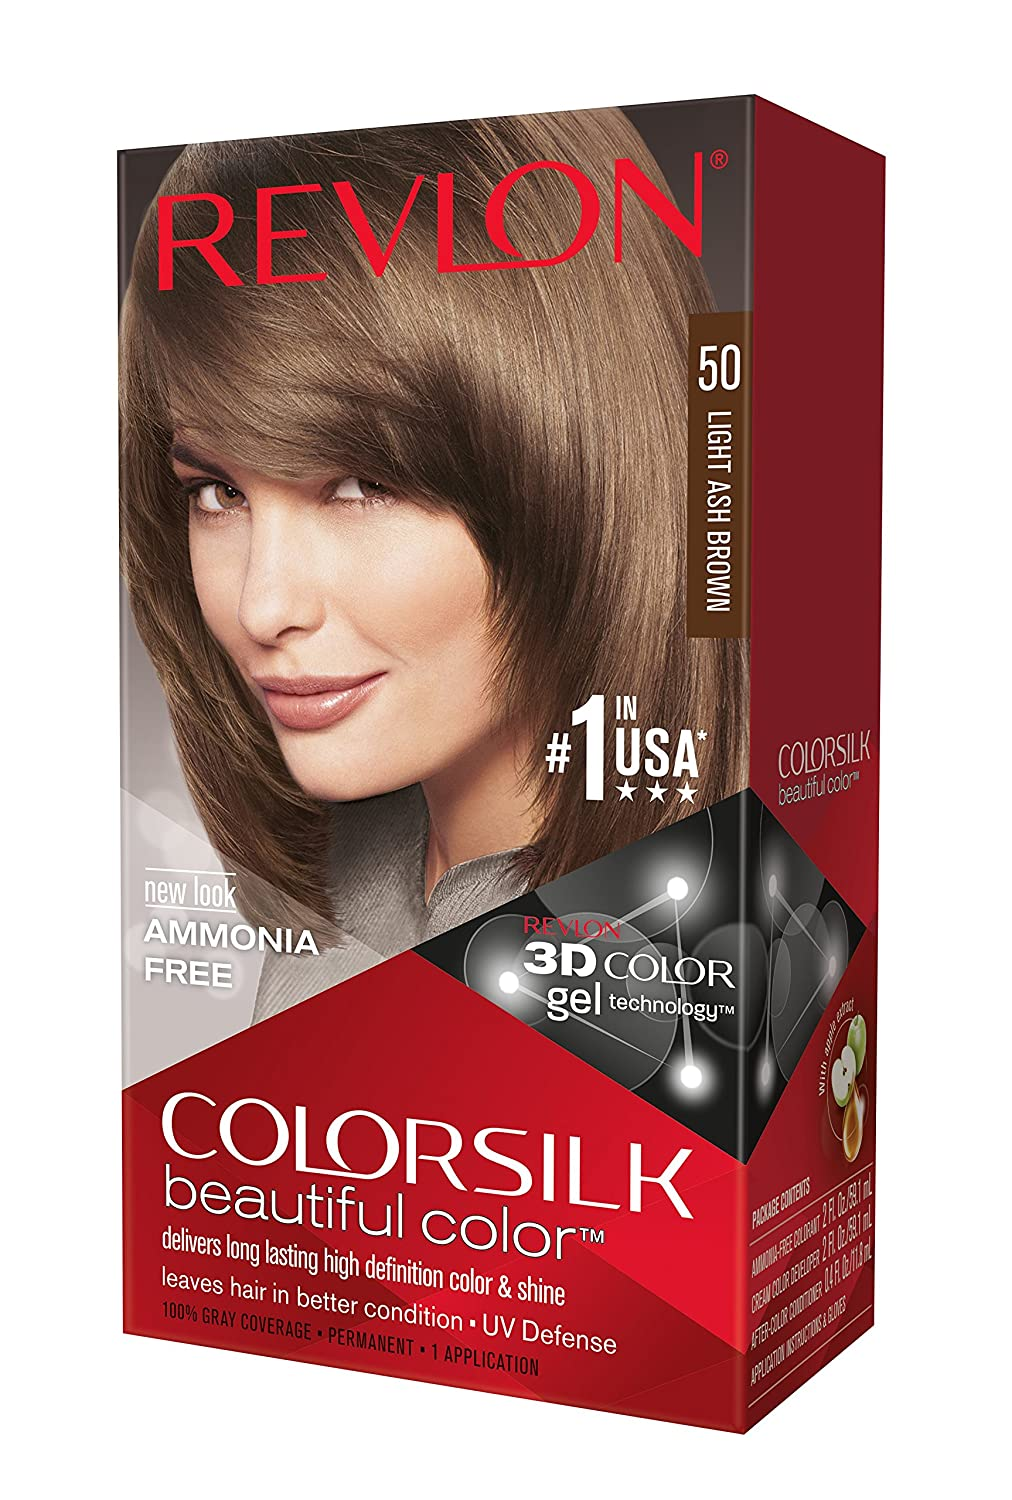 ash truth to color hair time dark cool hairs now dye light know you for lighting the is about brown